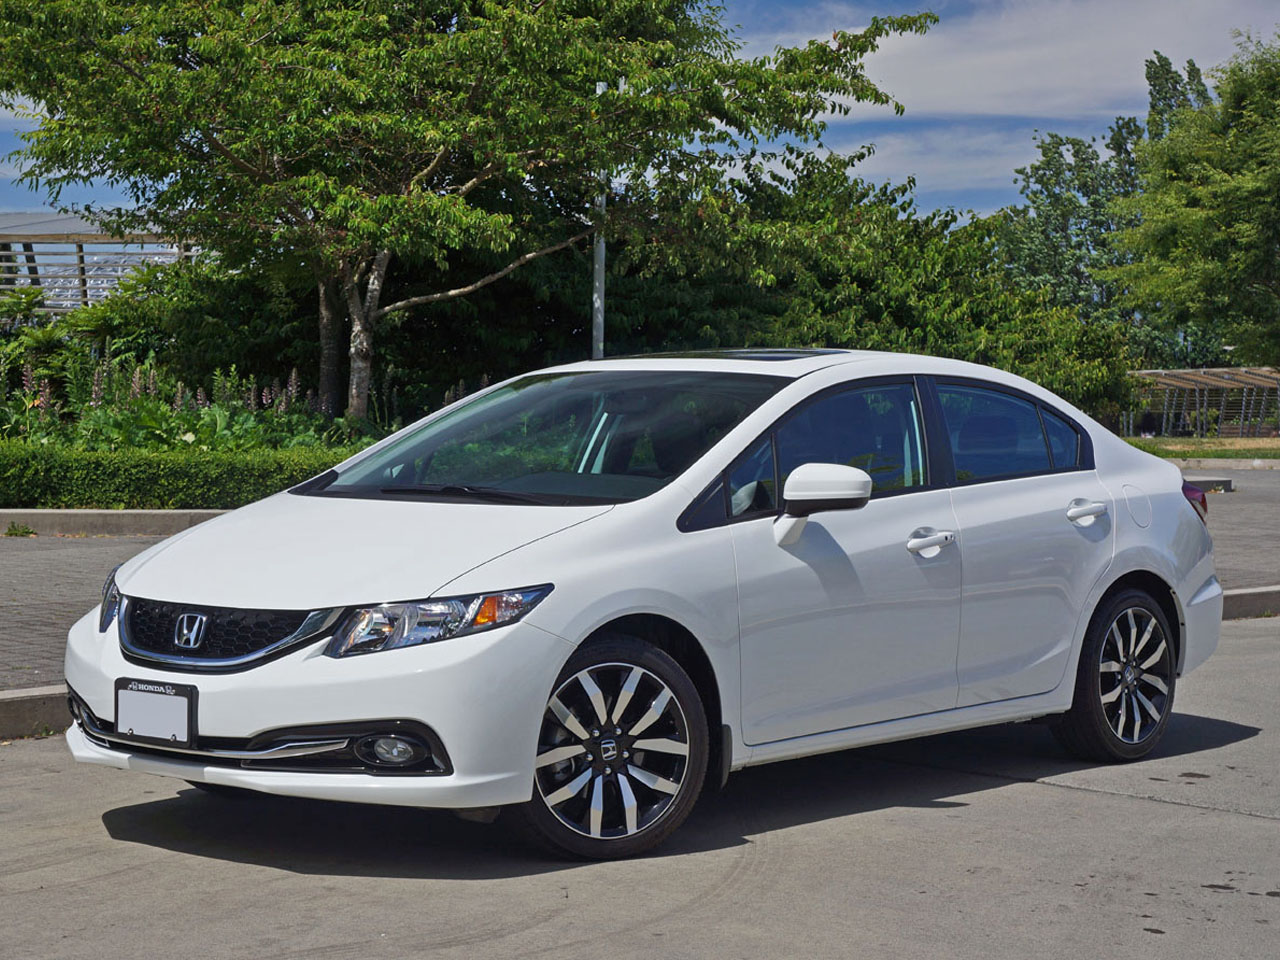 2015 honda civic sedan touring road test review for Honda civic 2015 for sale